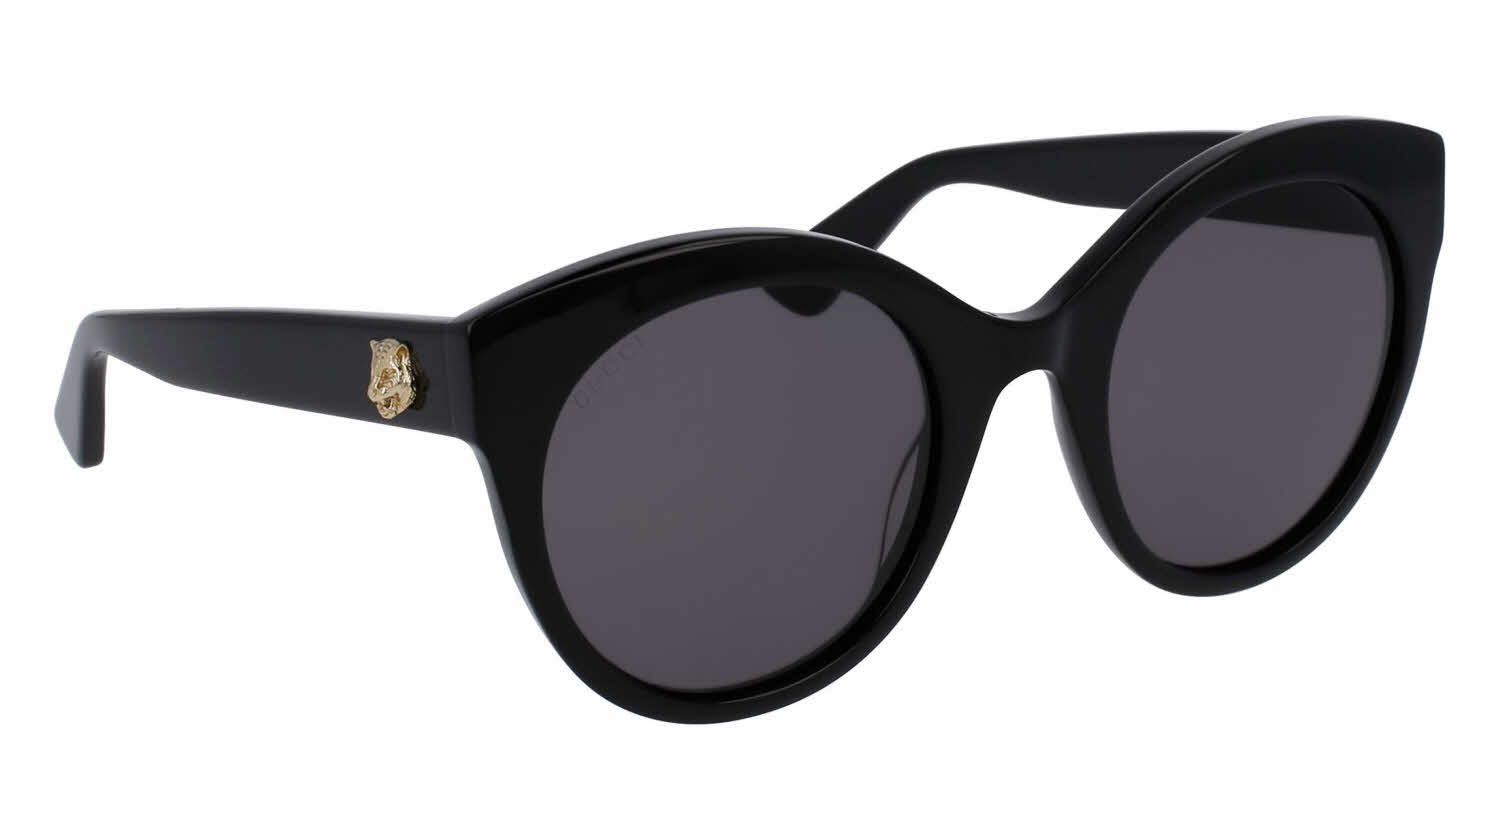 gucci sunglasses. gucci gg0028s sunglasses n